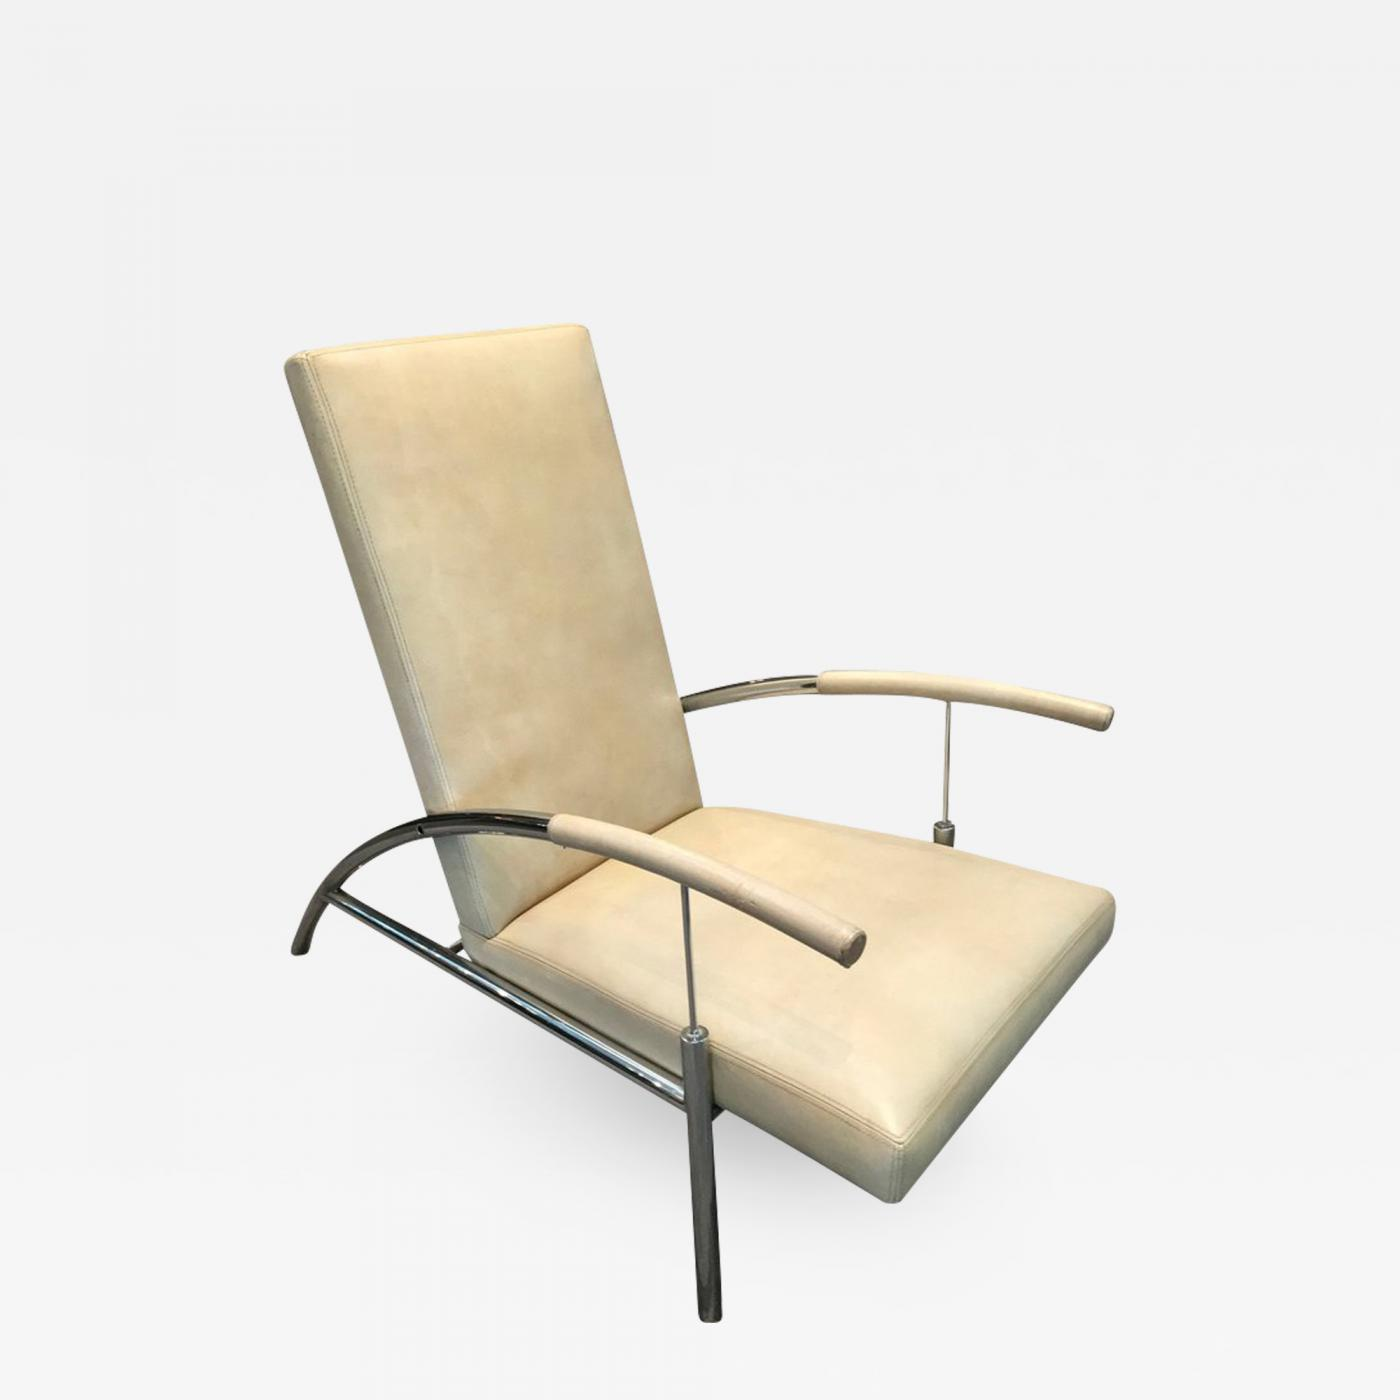 Awesome Pair Of Stylish Chrome And Leather Midcentury Design Lounge Chairs Theyellowbook Wood Chair Design Ideas Theyellowbookinfo